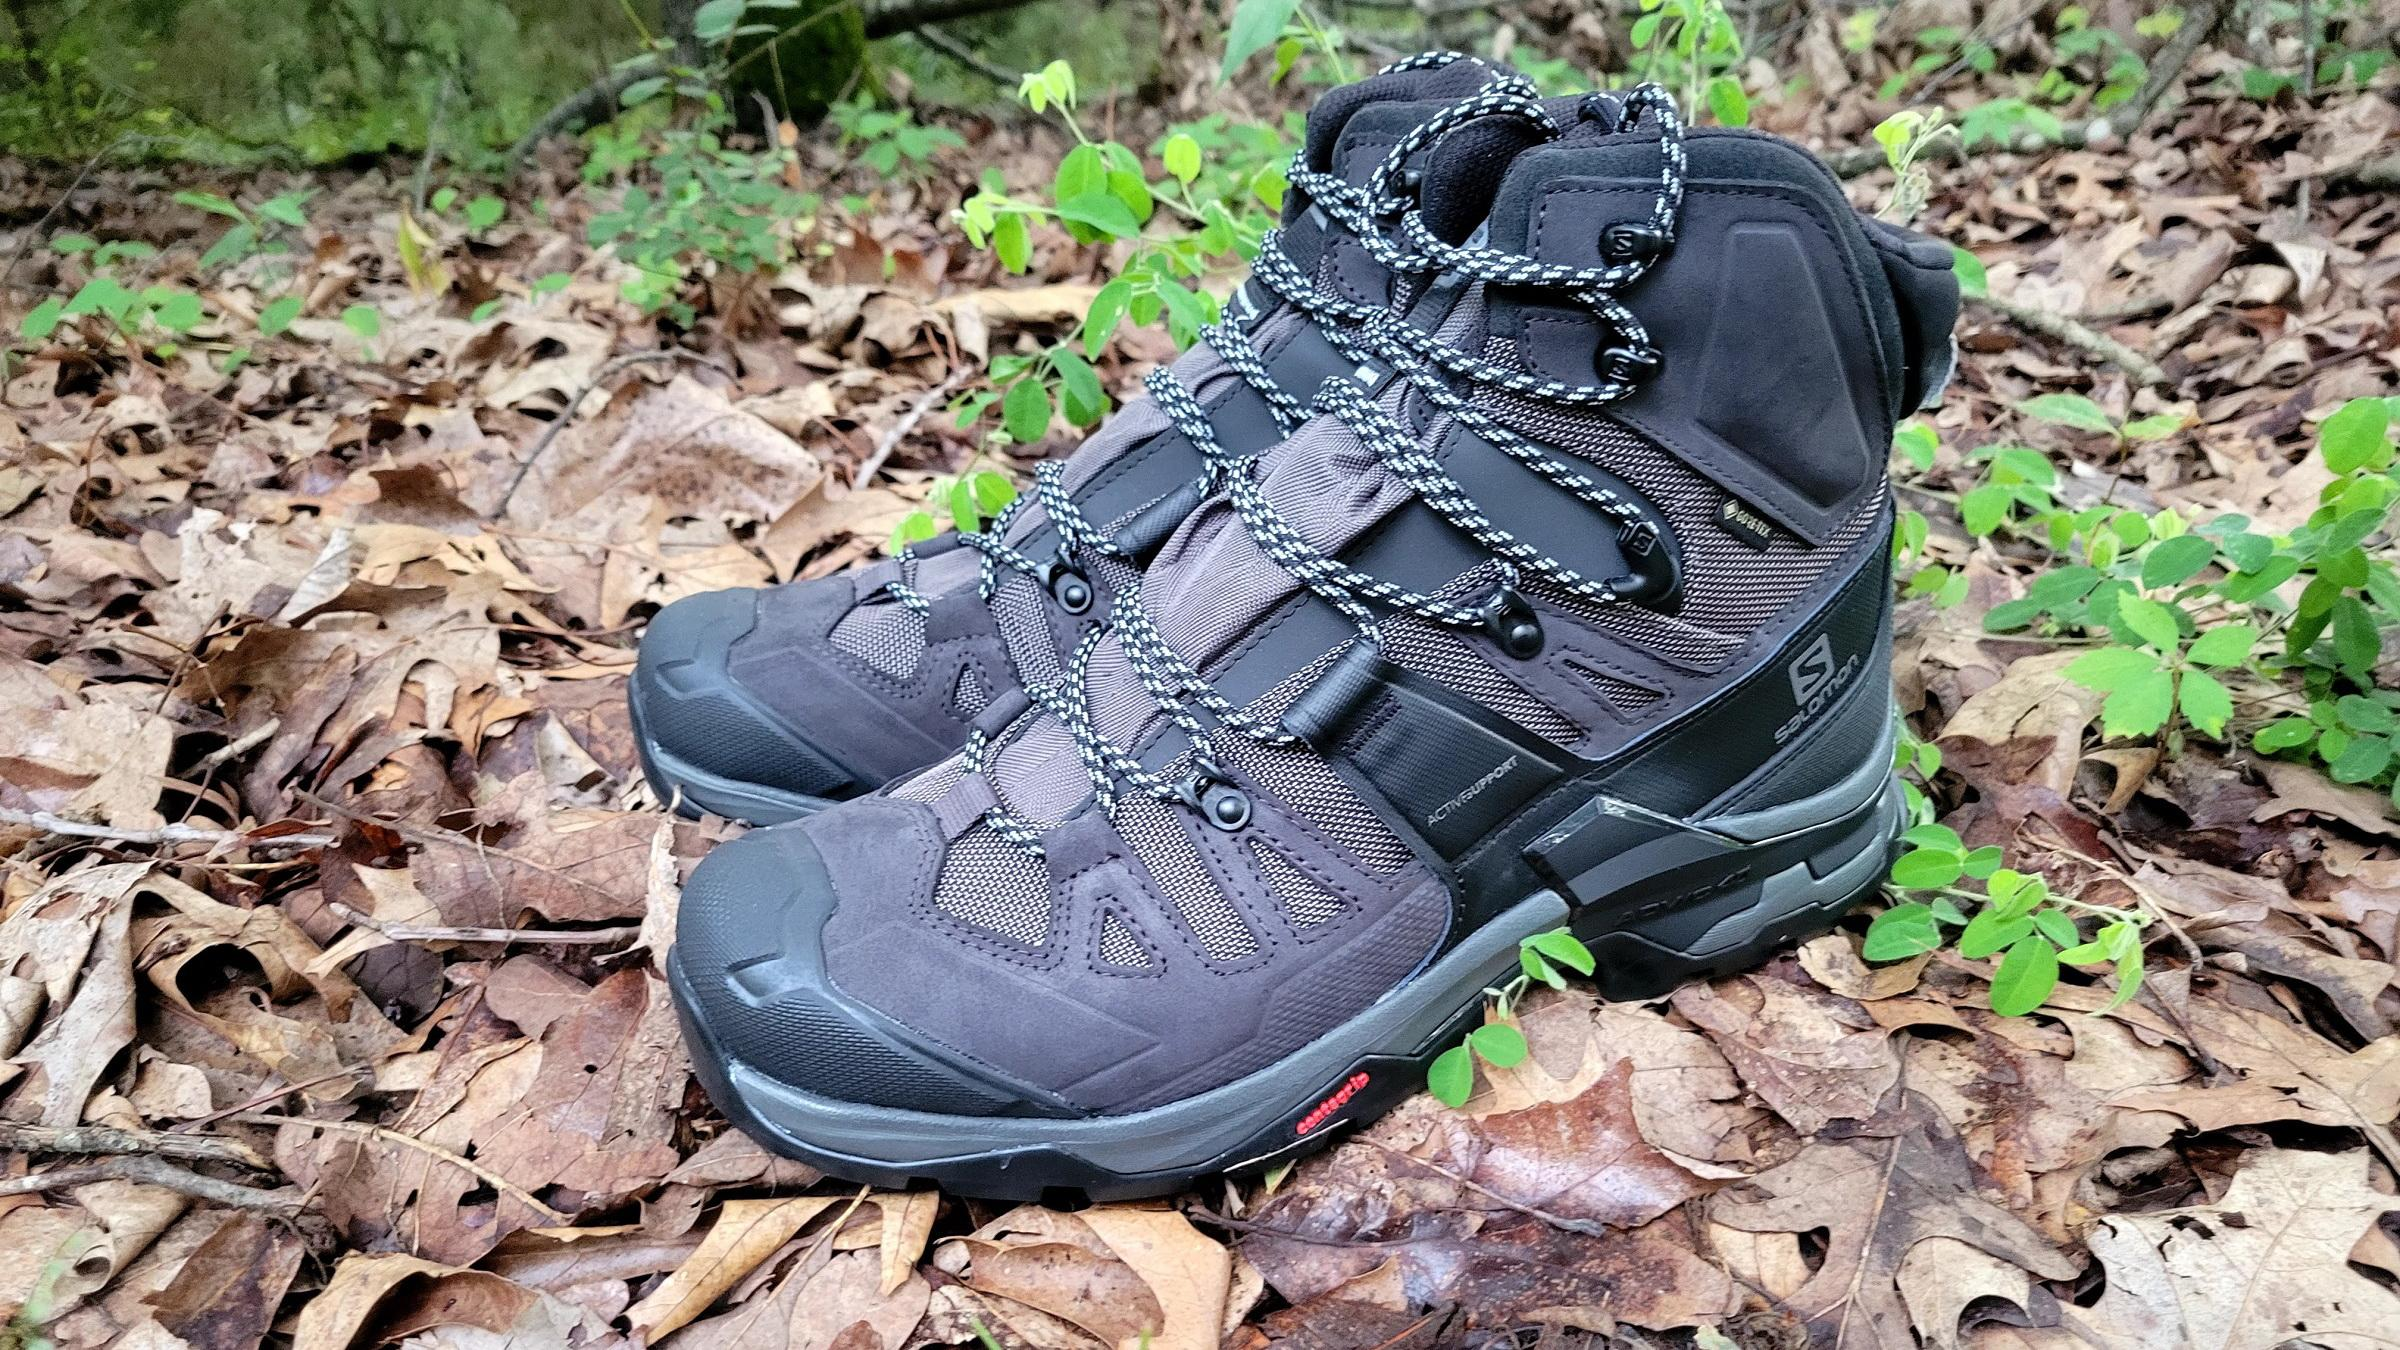 10 Best Winter Hiking Boots in 2021